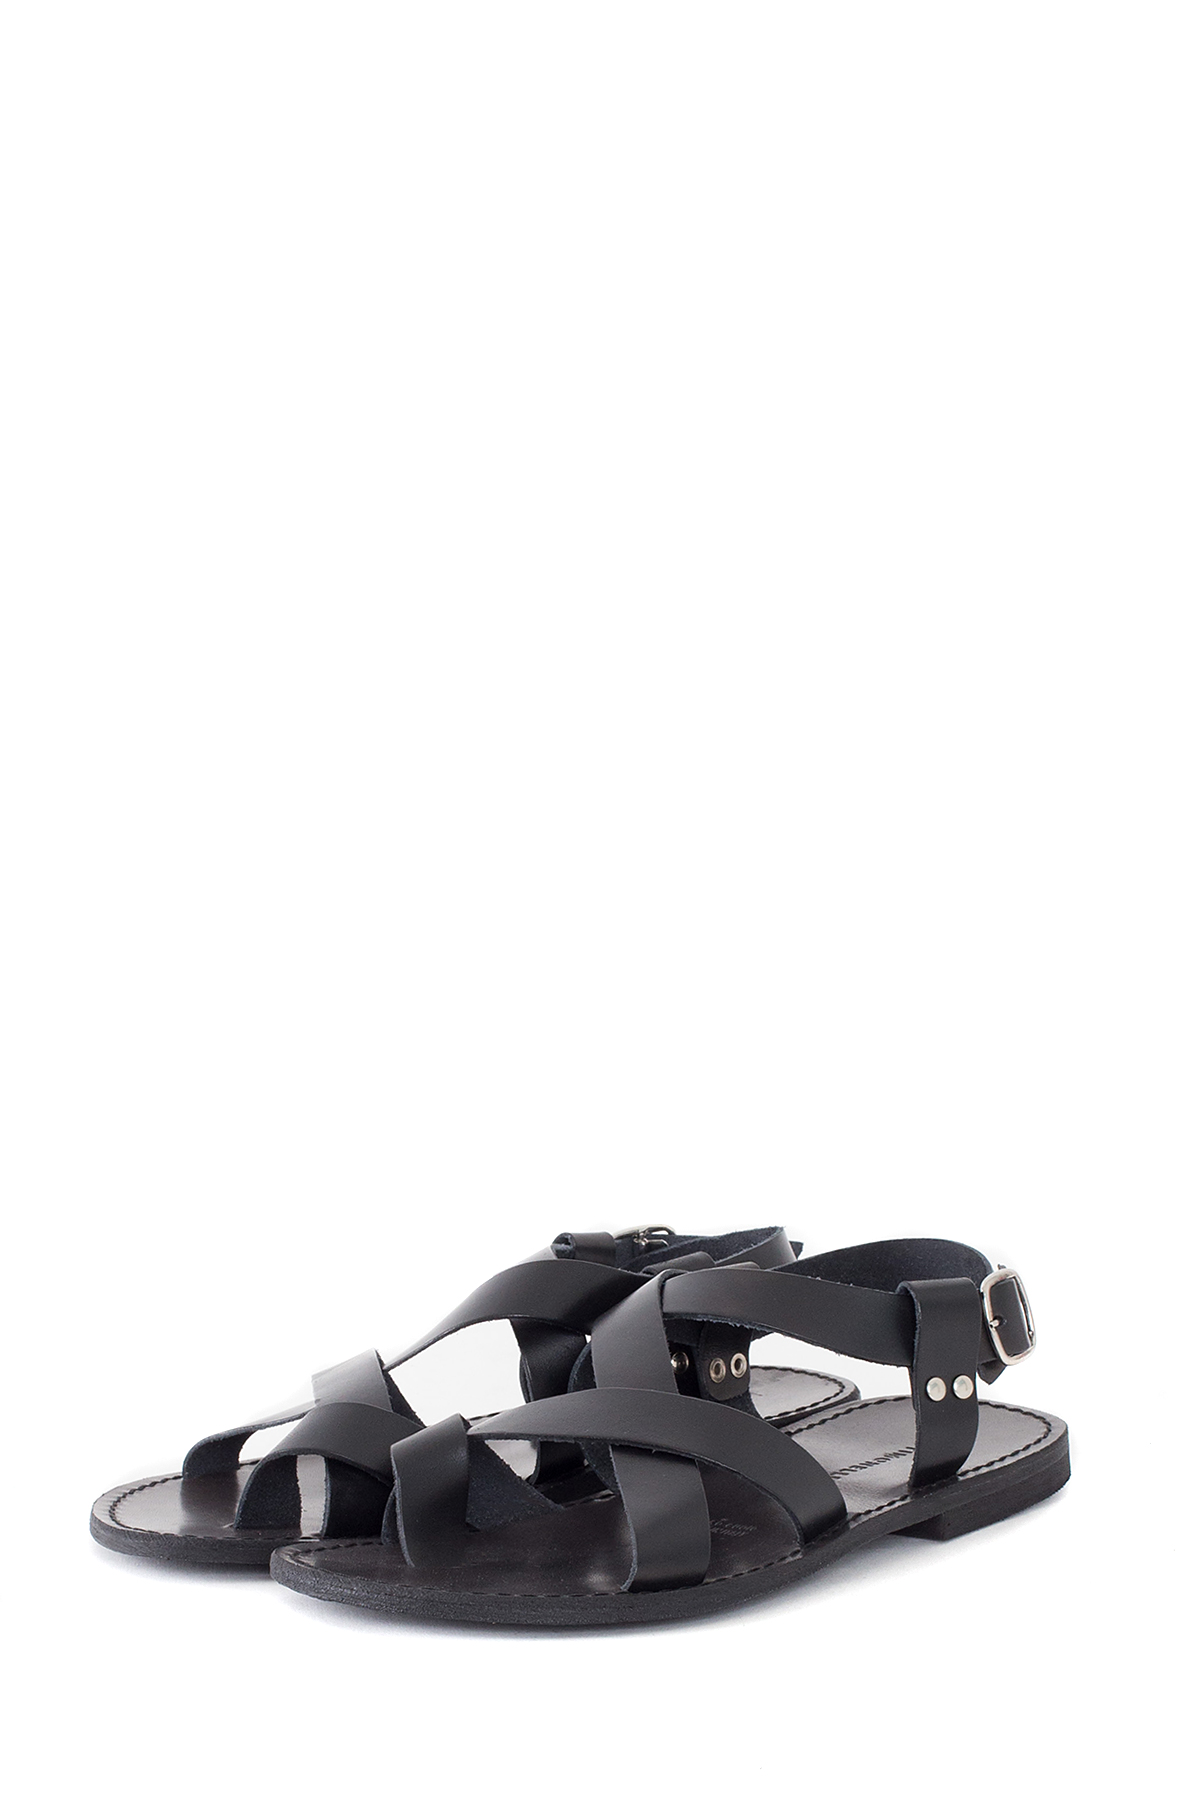 ATTIMONELLI'S : Soft Leather Flip Flops (Black)